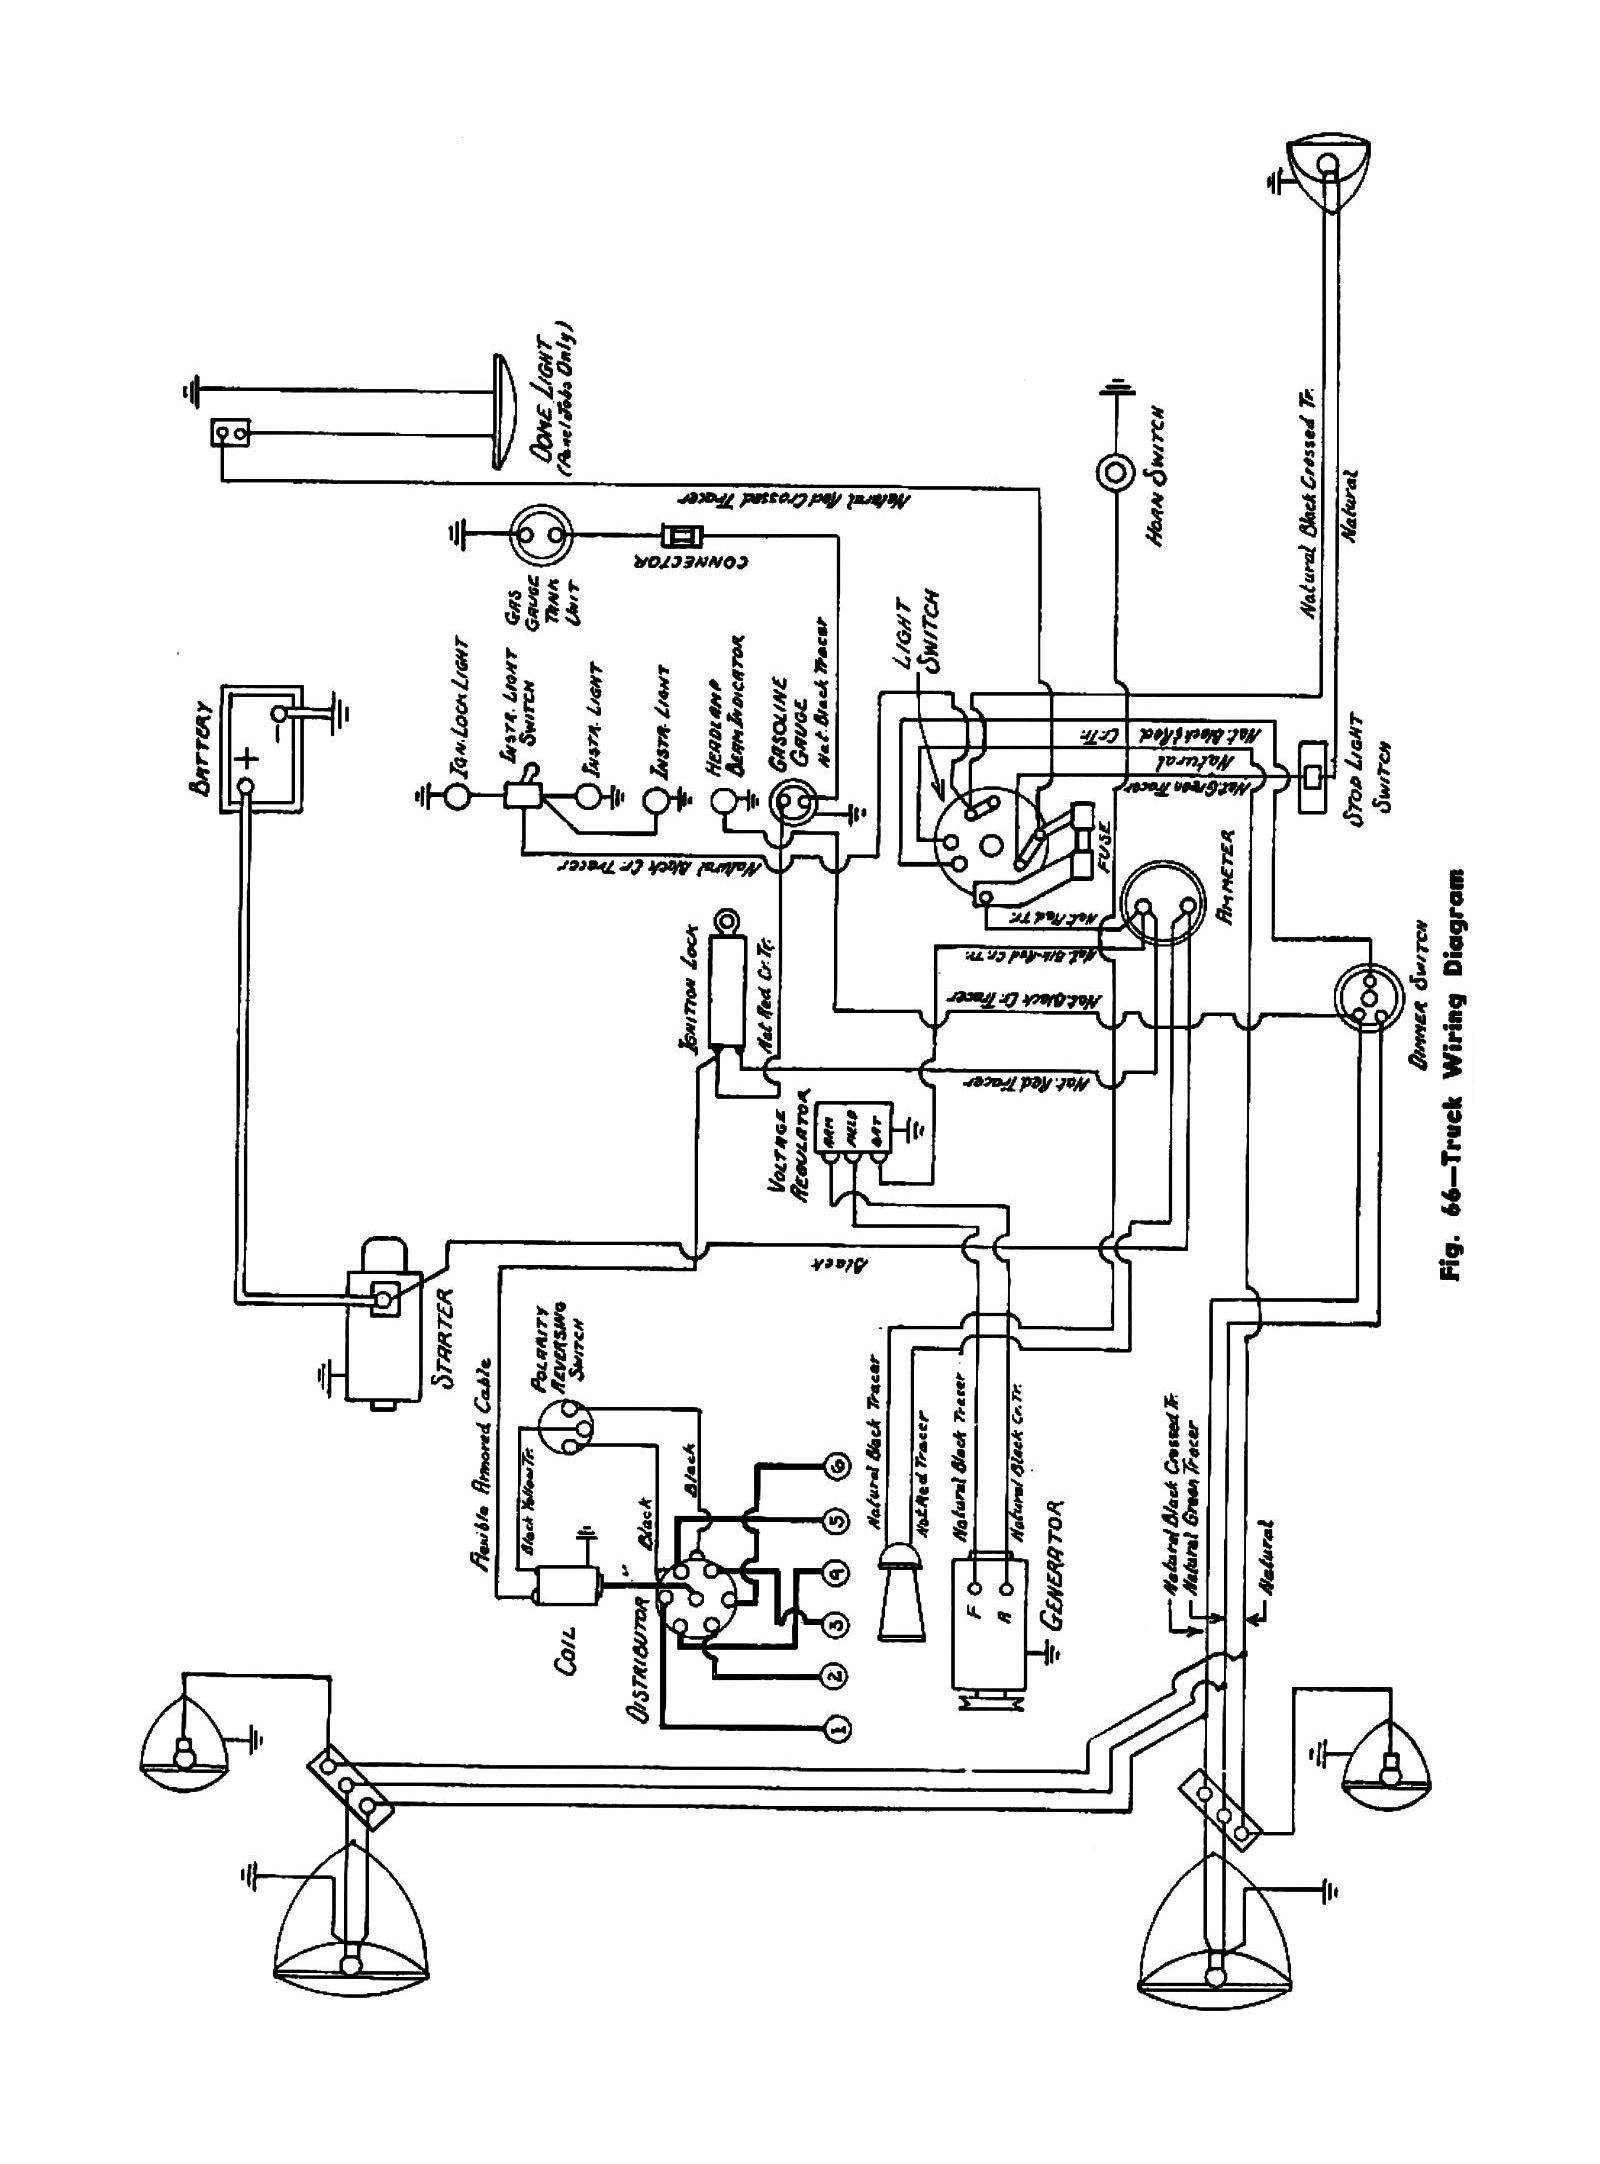 45truck chevy wiring diagrams 2004 Silverado Wiring Diagram PDF at bakdesigns.co